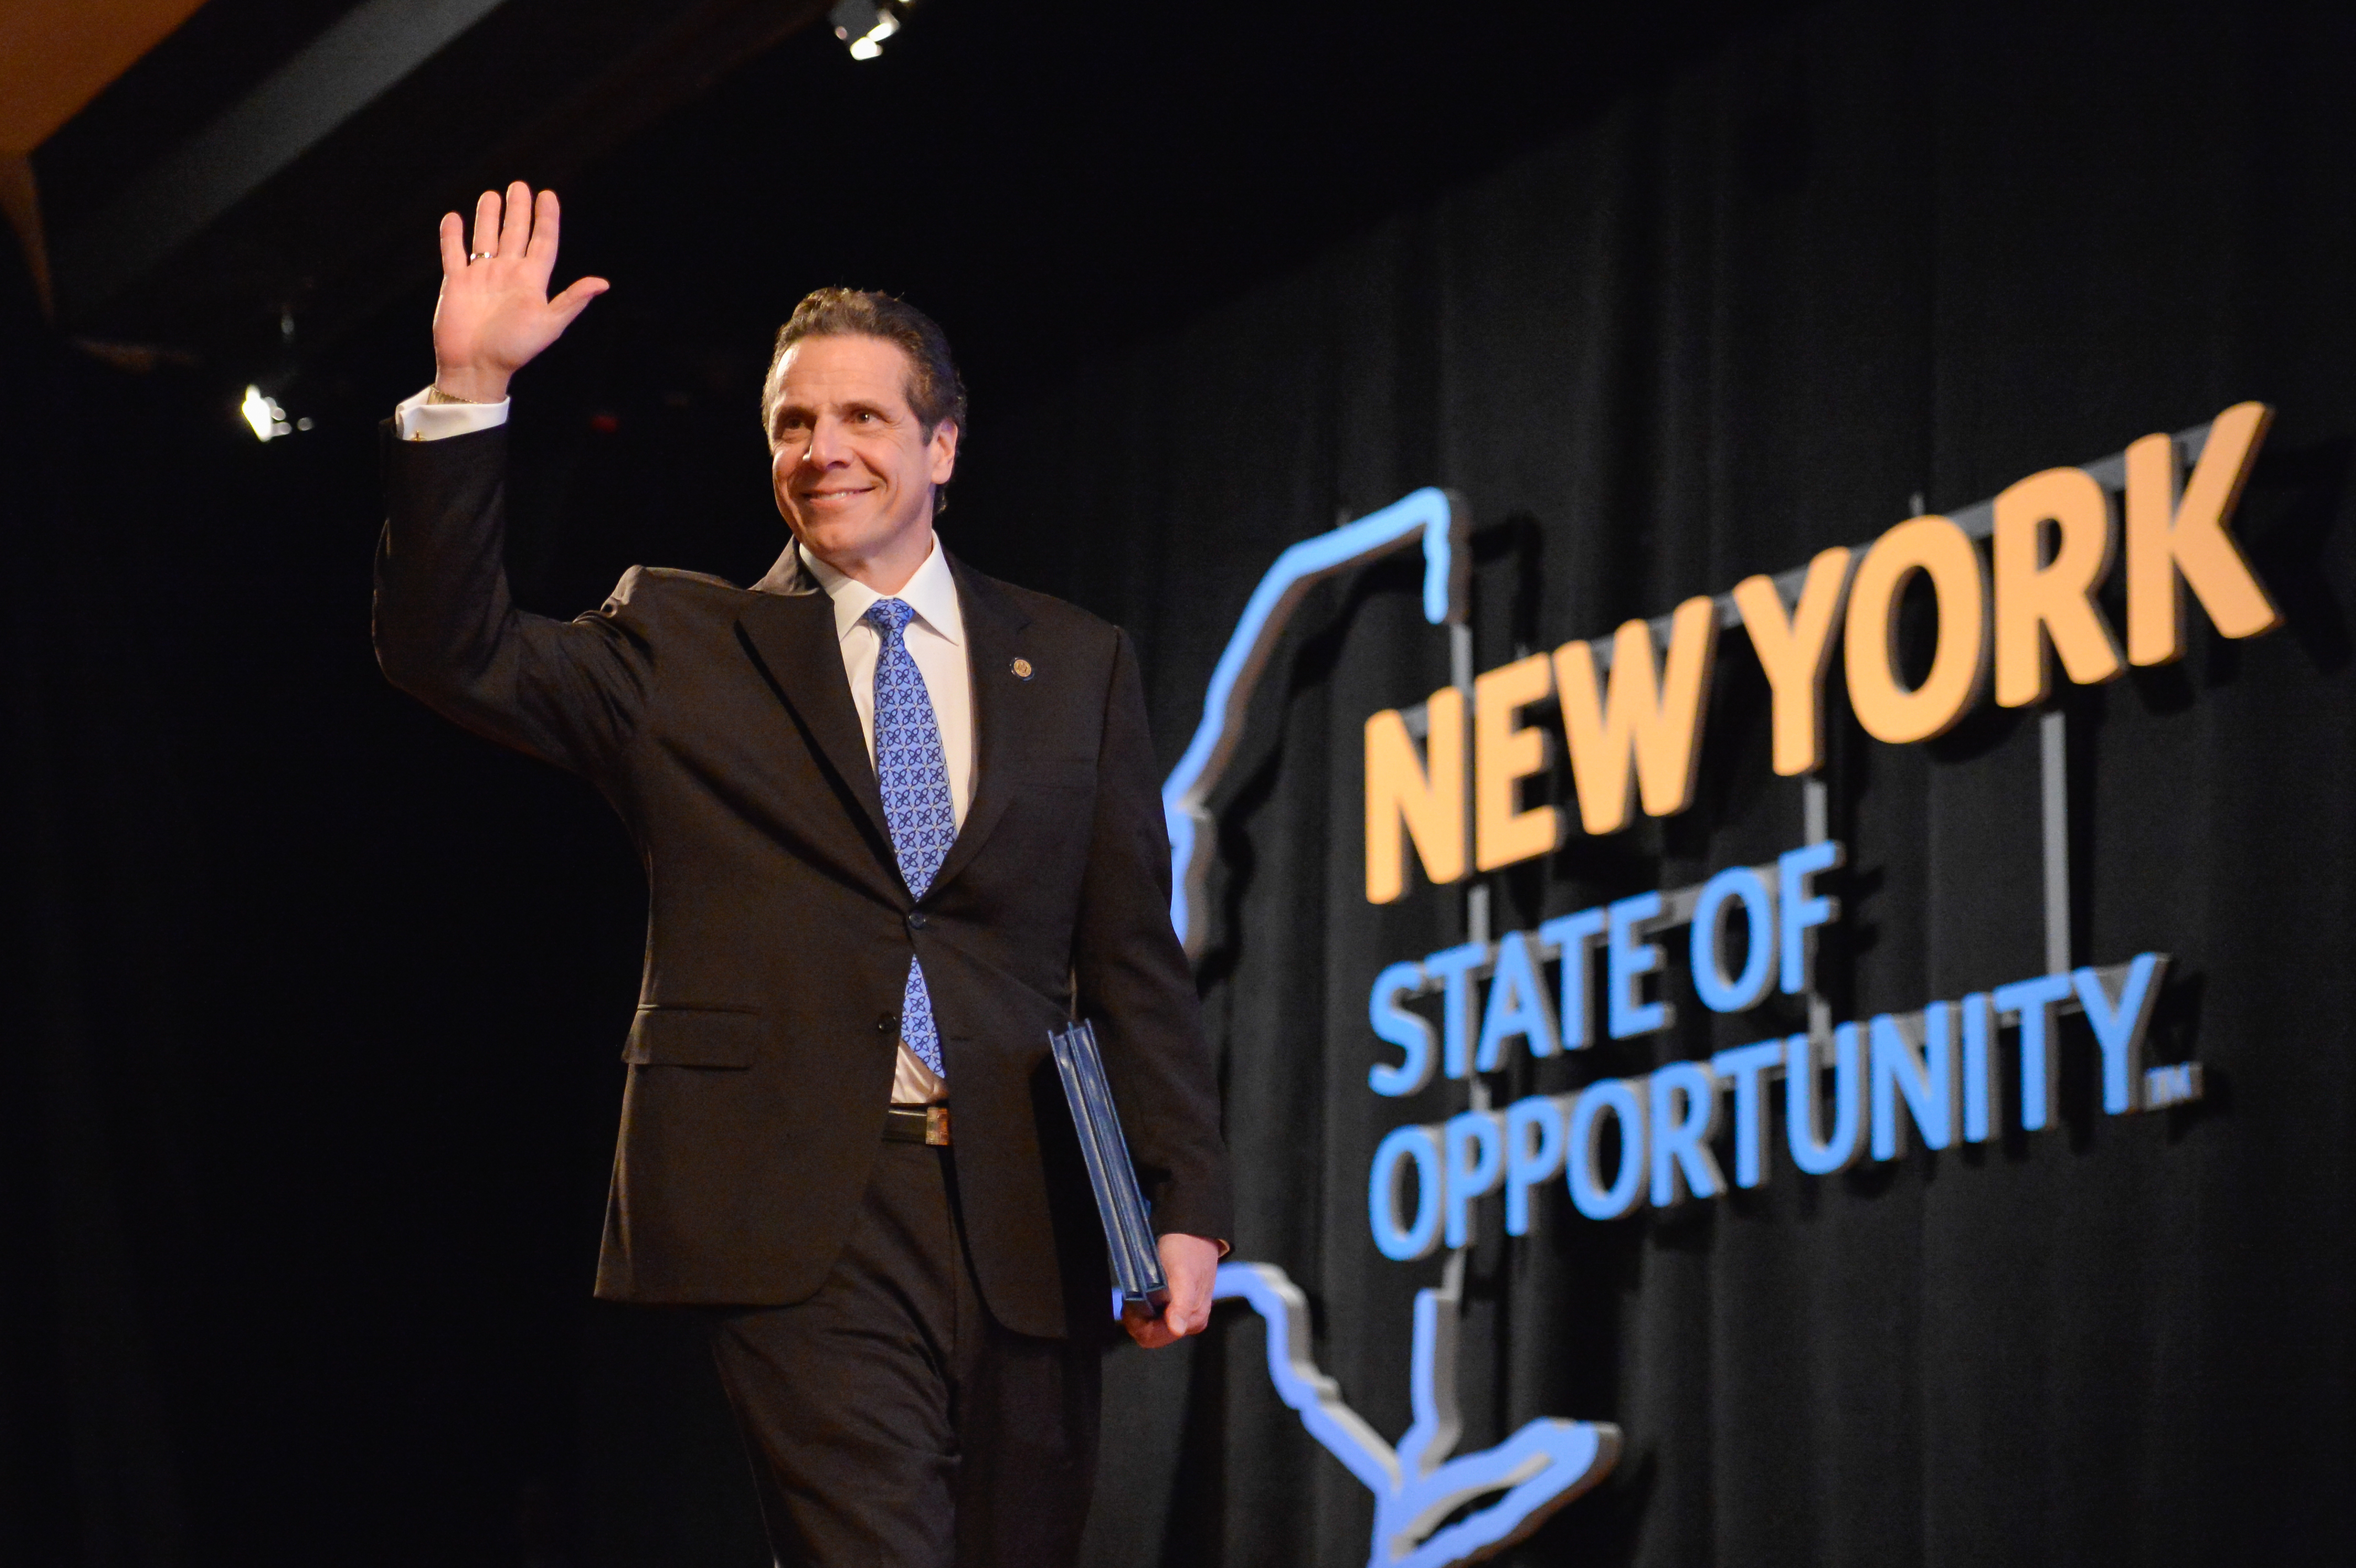 Gov. Andrew Cuomo puts forth a program for college graduates to help pay off college loans two years after graduation as a part of the state's new budget. (Photo provided by the Governor's office)